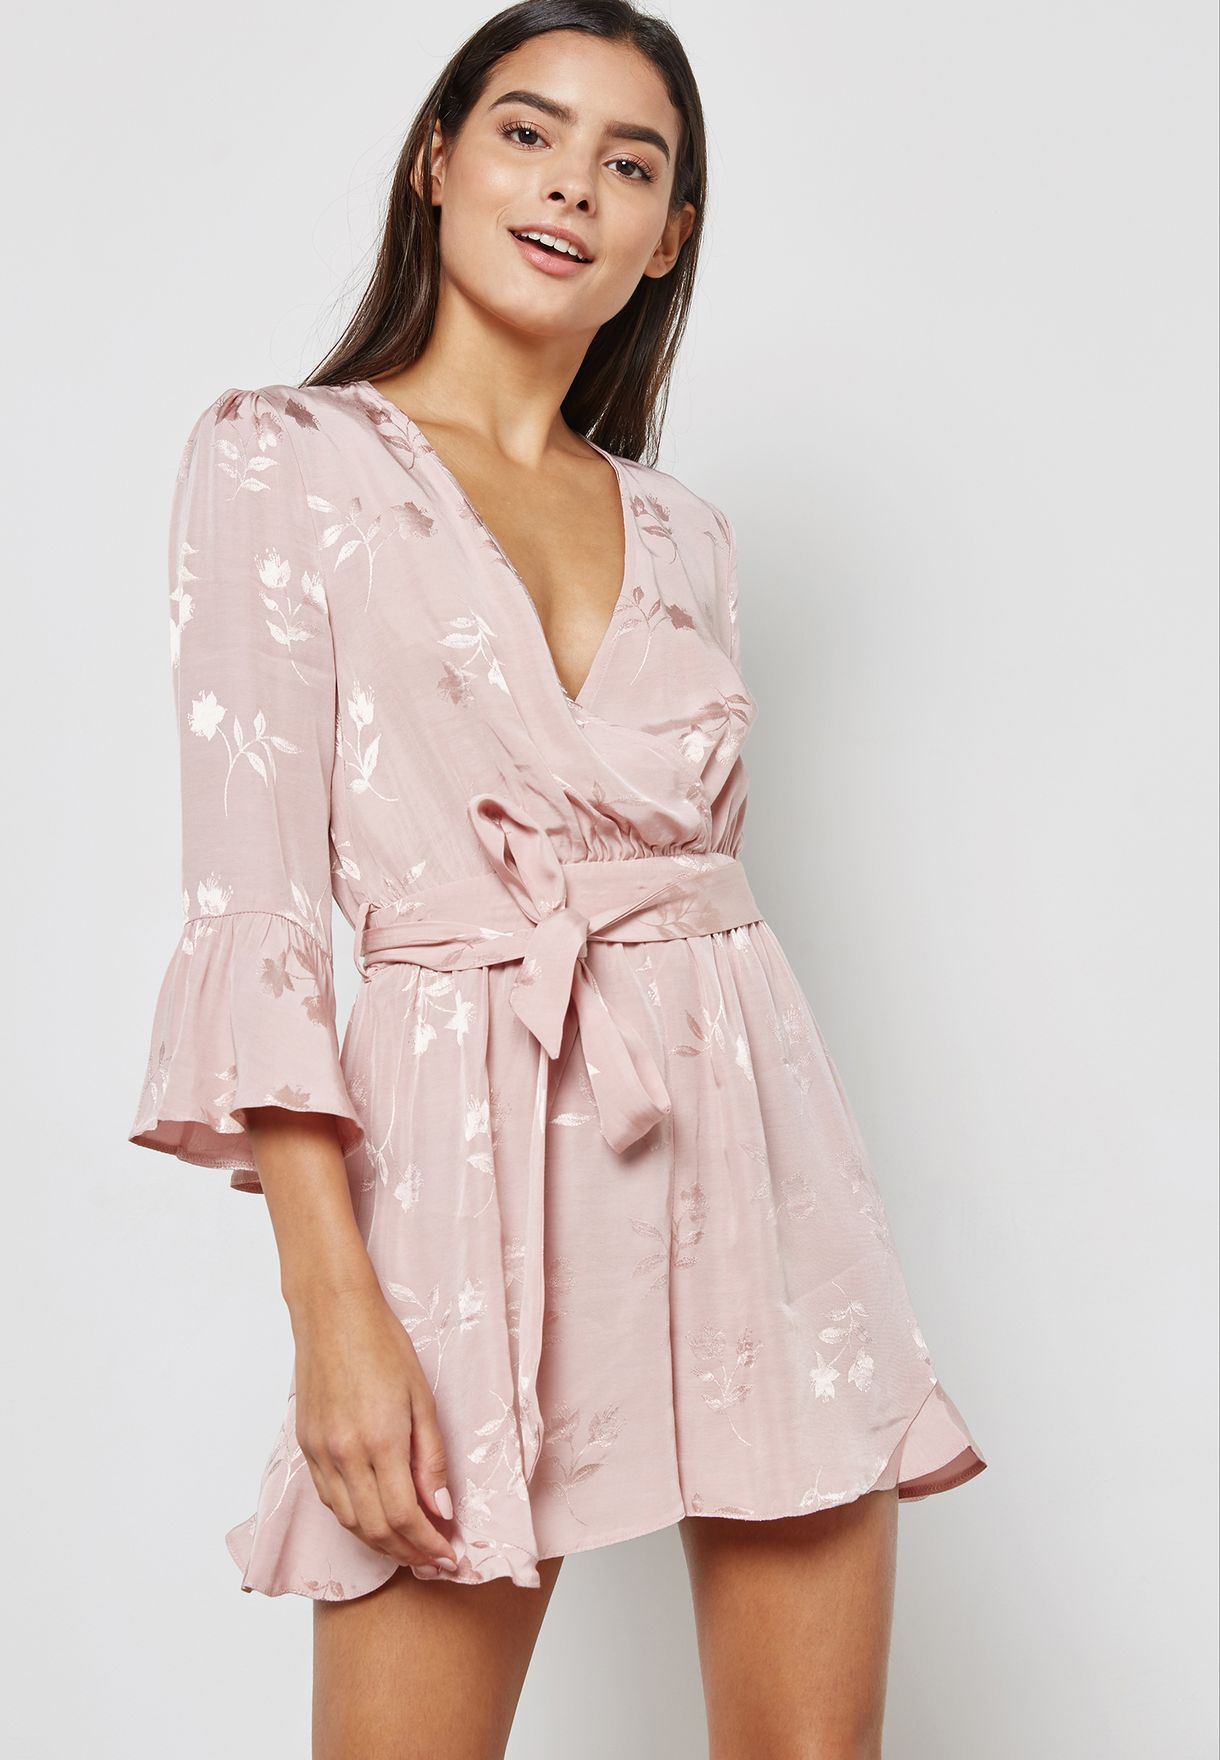 9397c355971 Shop Miss Selfridge Petite pink Belted Jacquard Playsuit 34A09VPNK ...